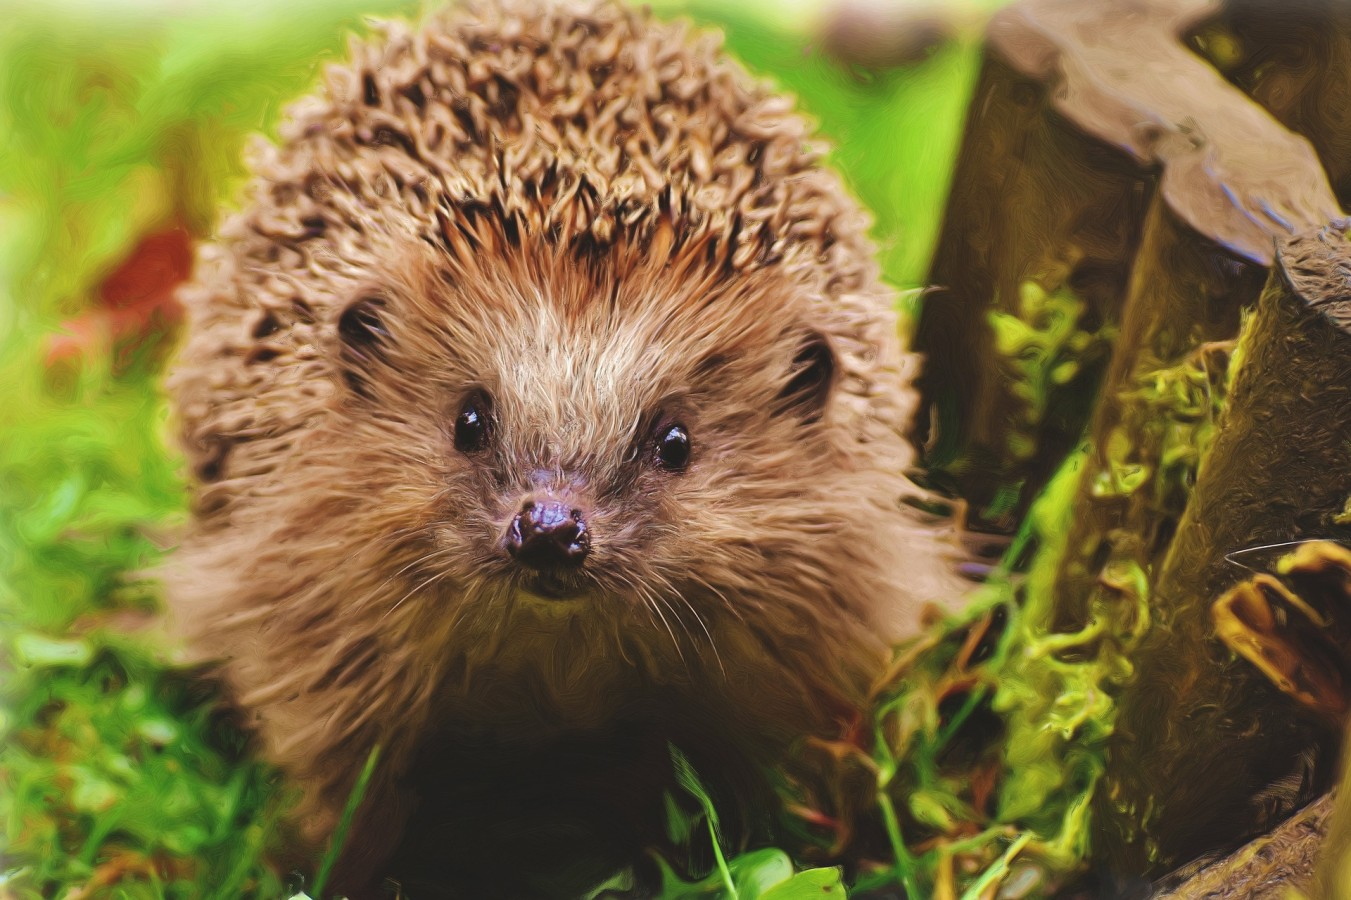 Our British Hedgehogs are declining